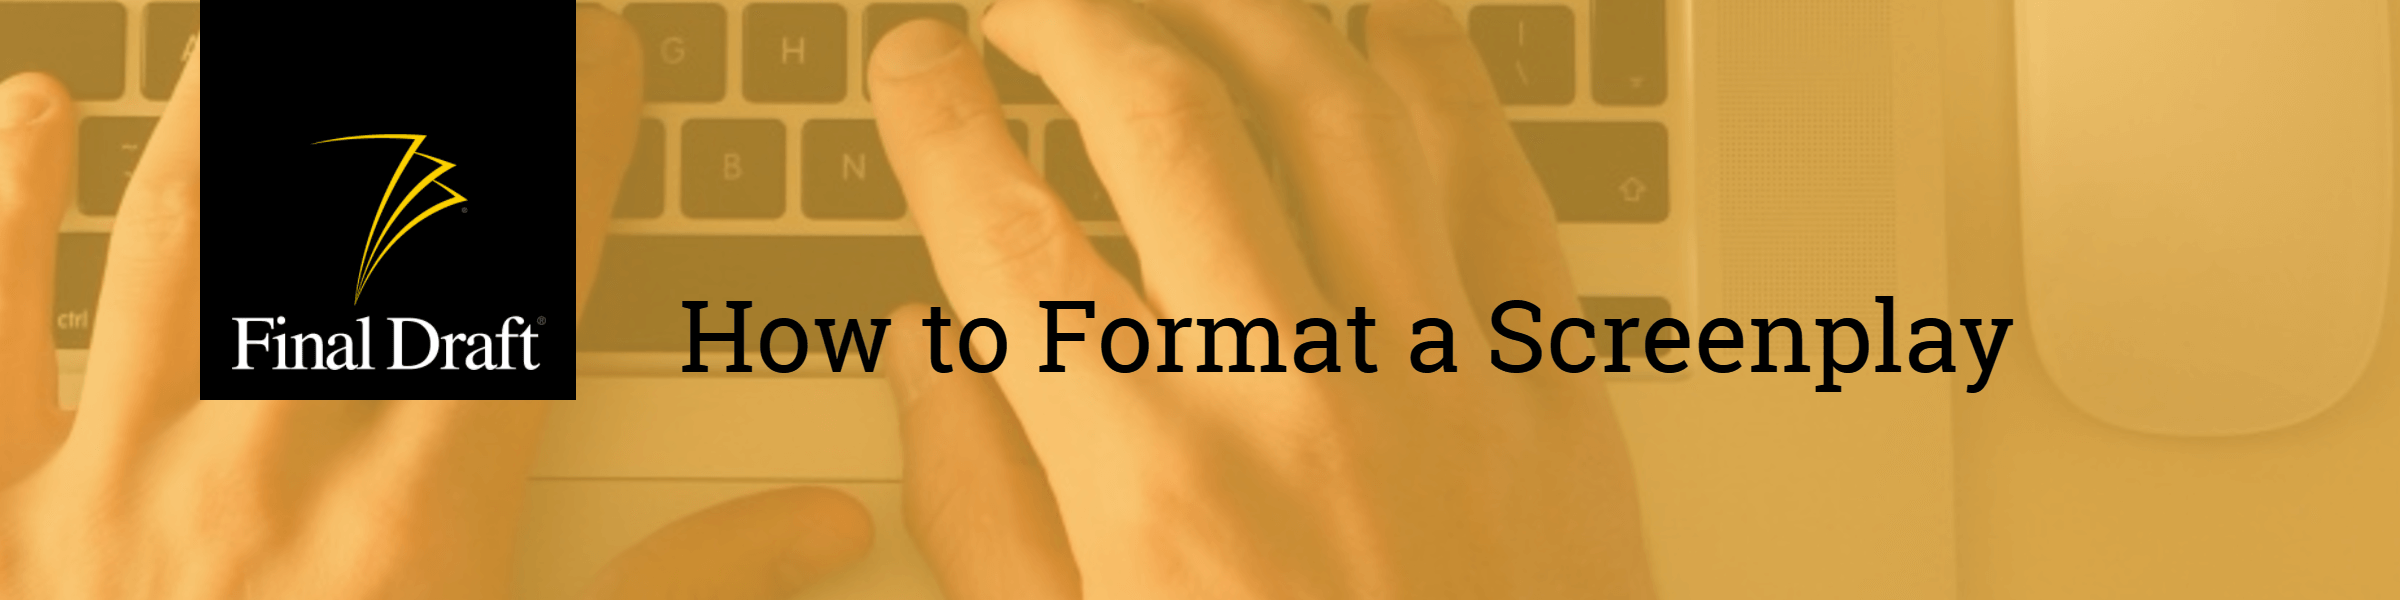 Learn Screenwriting How to Format a Screenplay